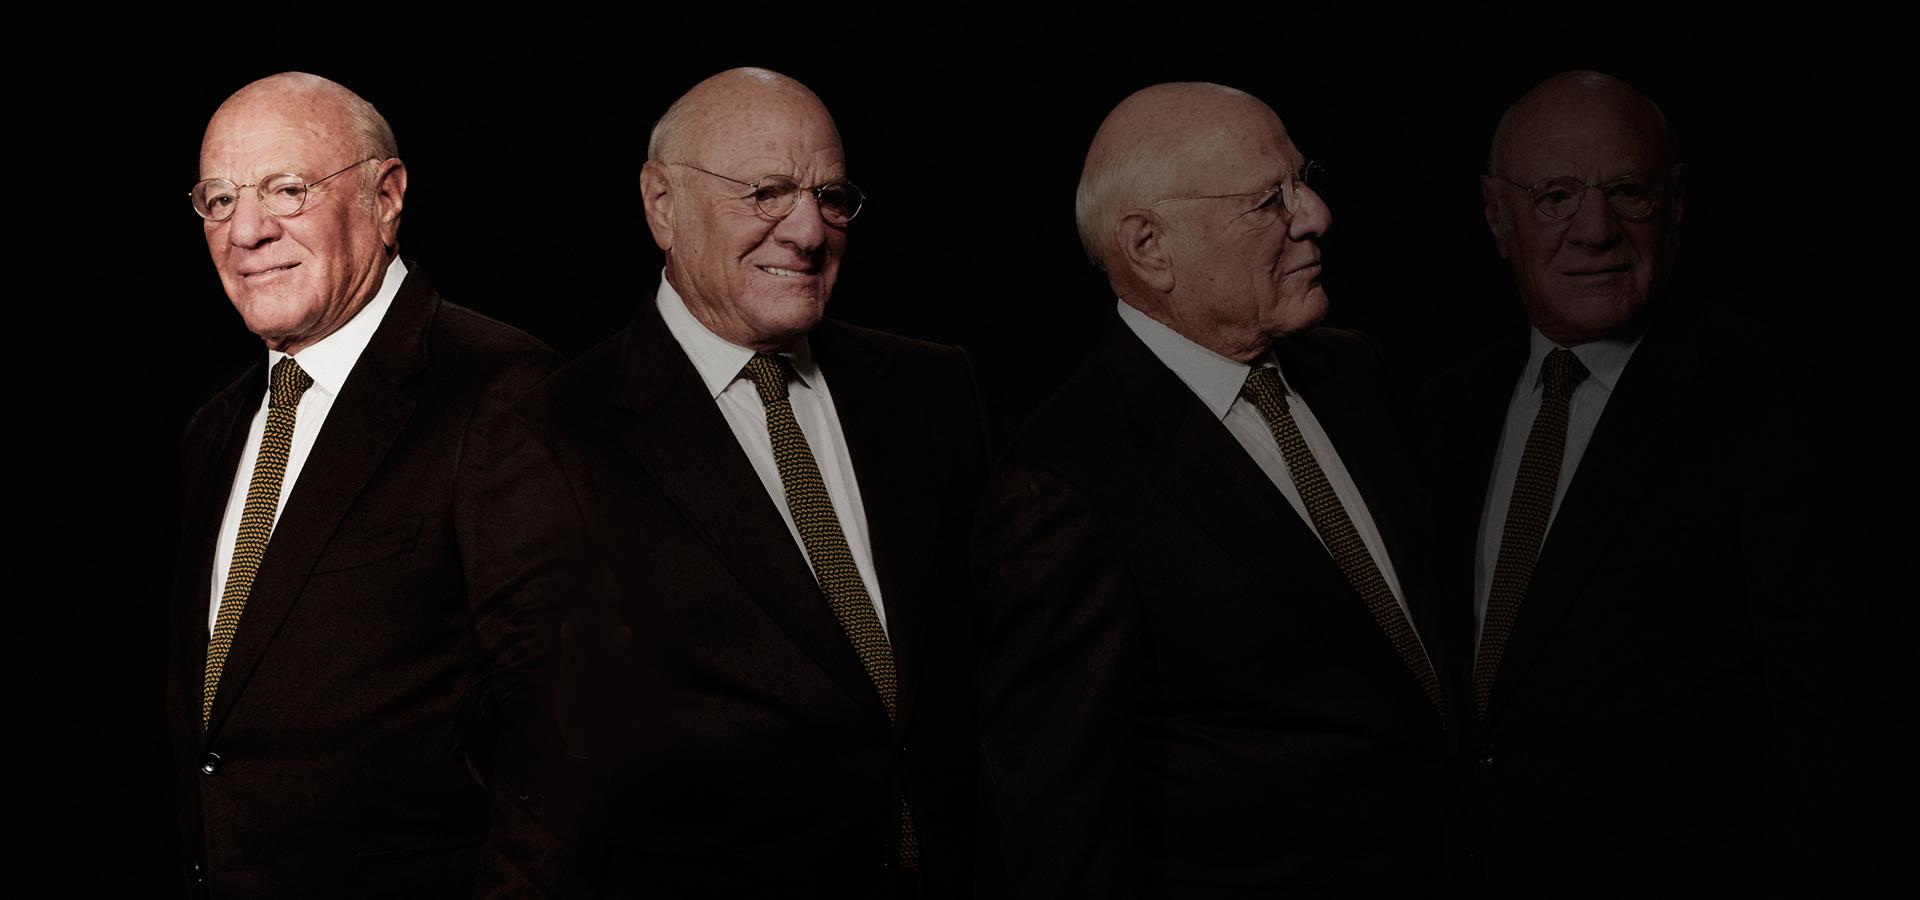 Who Needs Moonshots? How Former Hollywood Mogul Barry Diller Built A $4.2 Billion Tech Fortune Out Of Underdog Assets